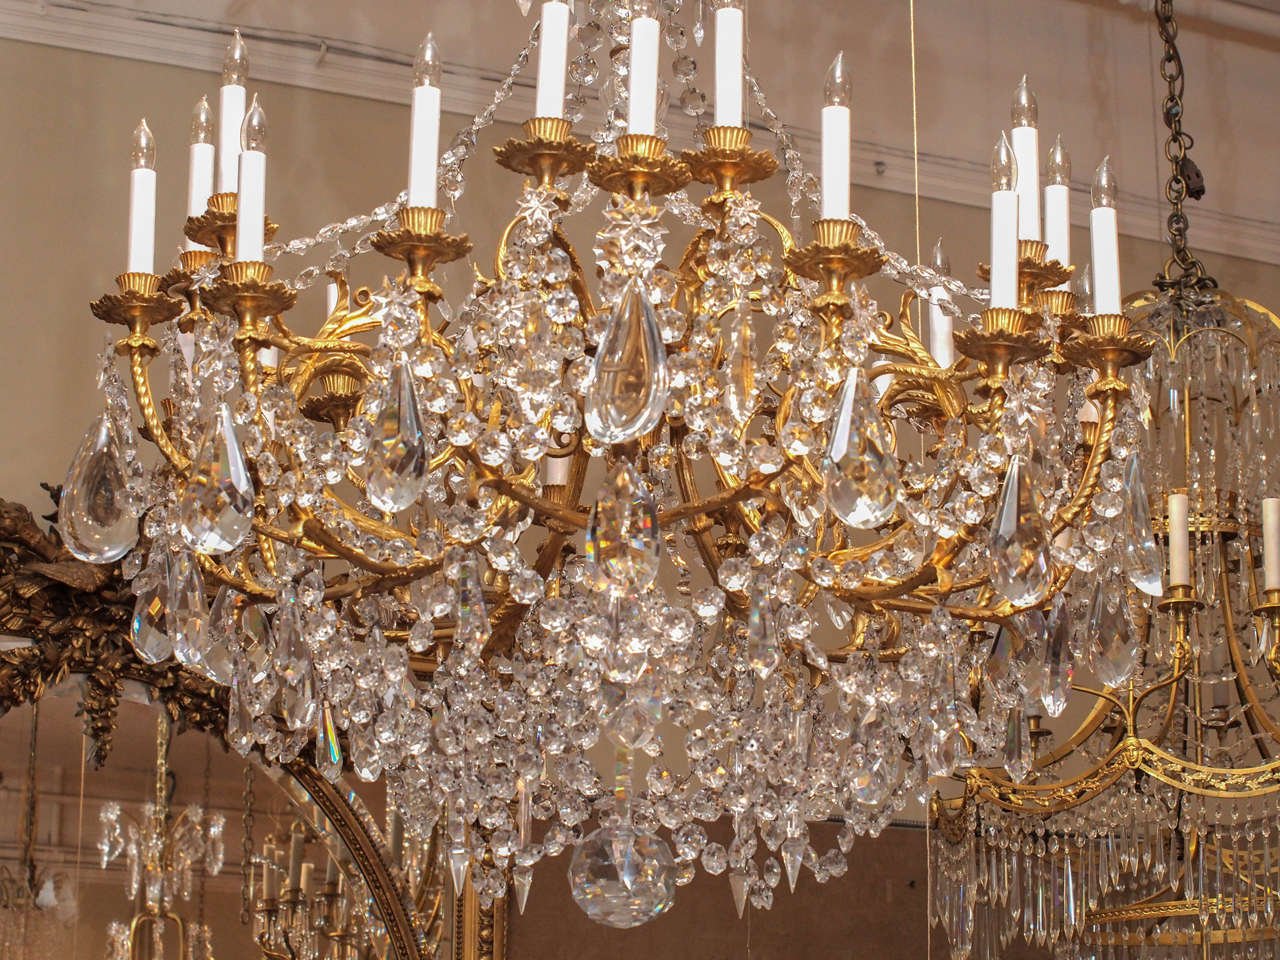 Antique French Baccarat Crystal and Bronze D'ore 24 Light Chandelier circa 1890 4